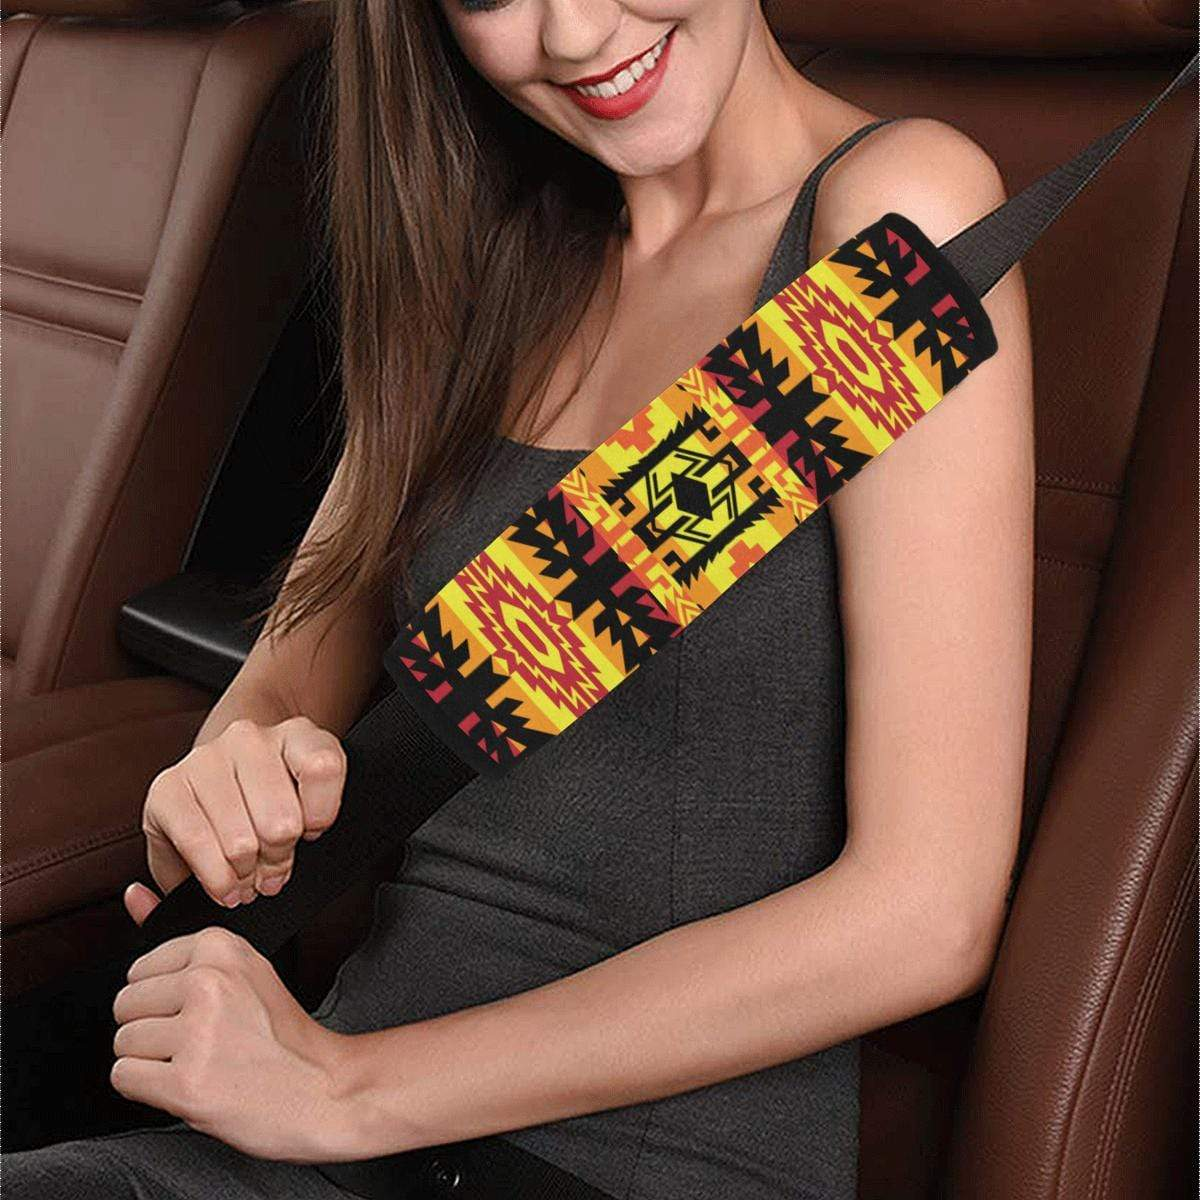 Journey of Generations Car Seat Belt Cover 7''x12.6'' Car Seat Belt Cover 7''x12.6'' e-joyer